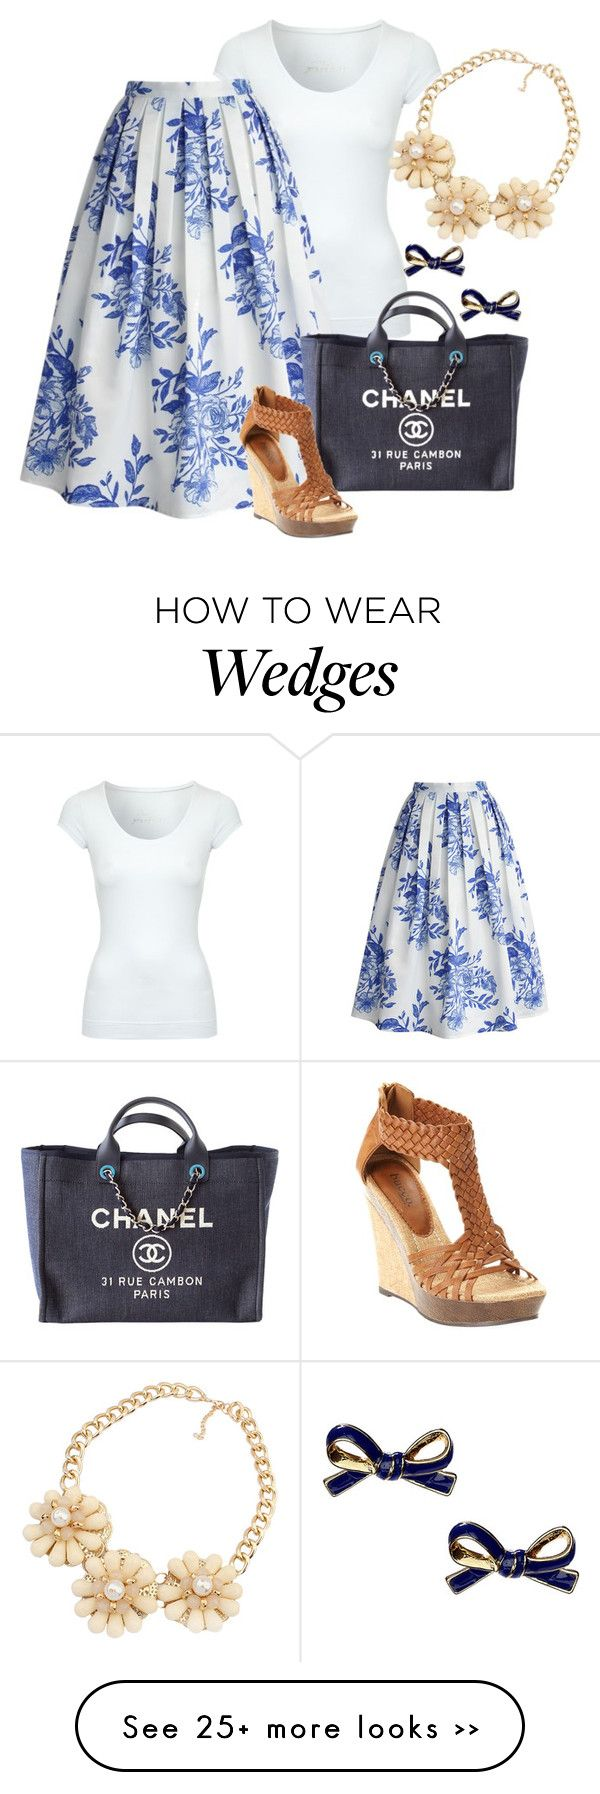 """kate and jane"" by shoesclothesbagsaddict on Polyvore"